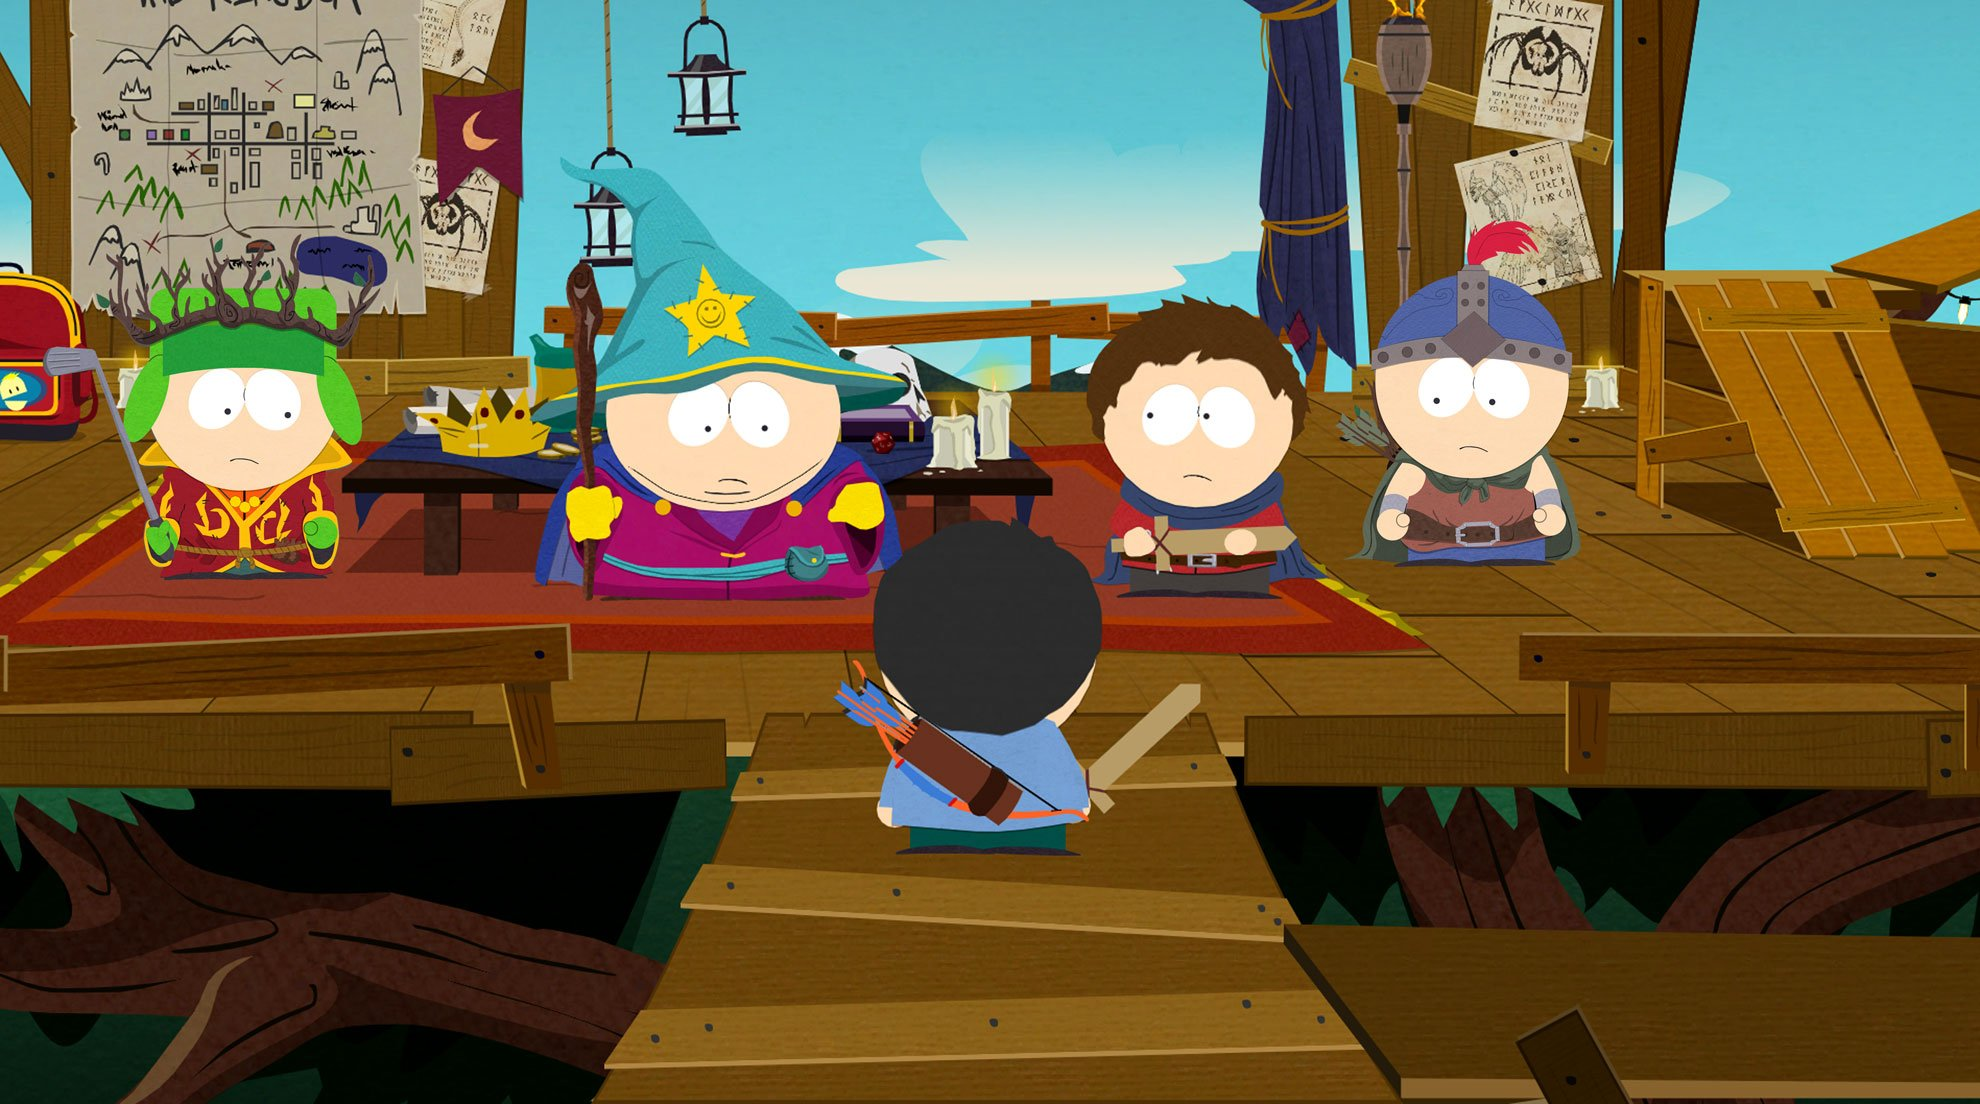 file_1906_south-park-the-game-screenshots-1